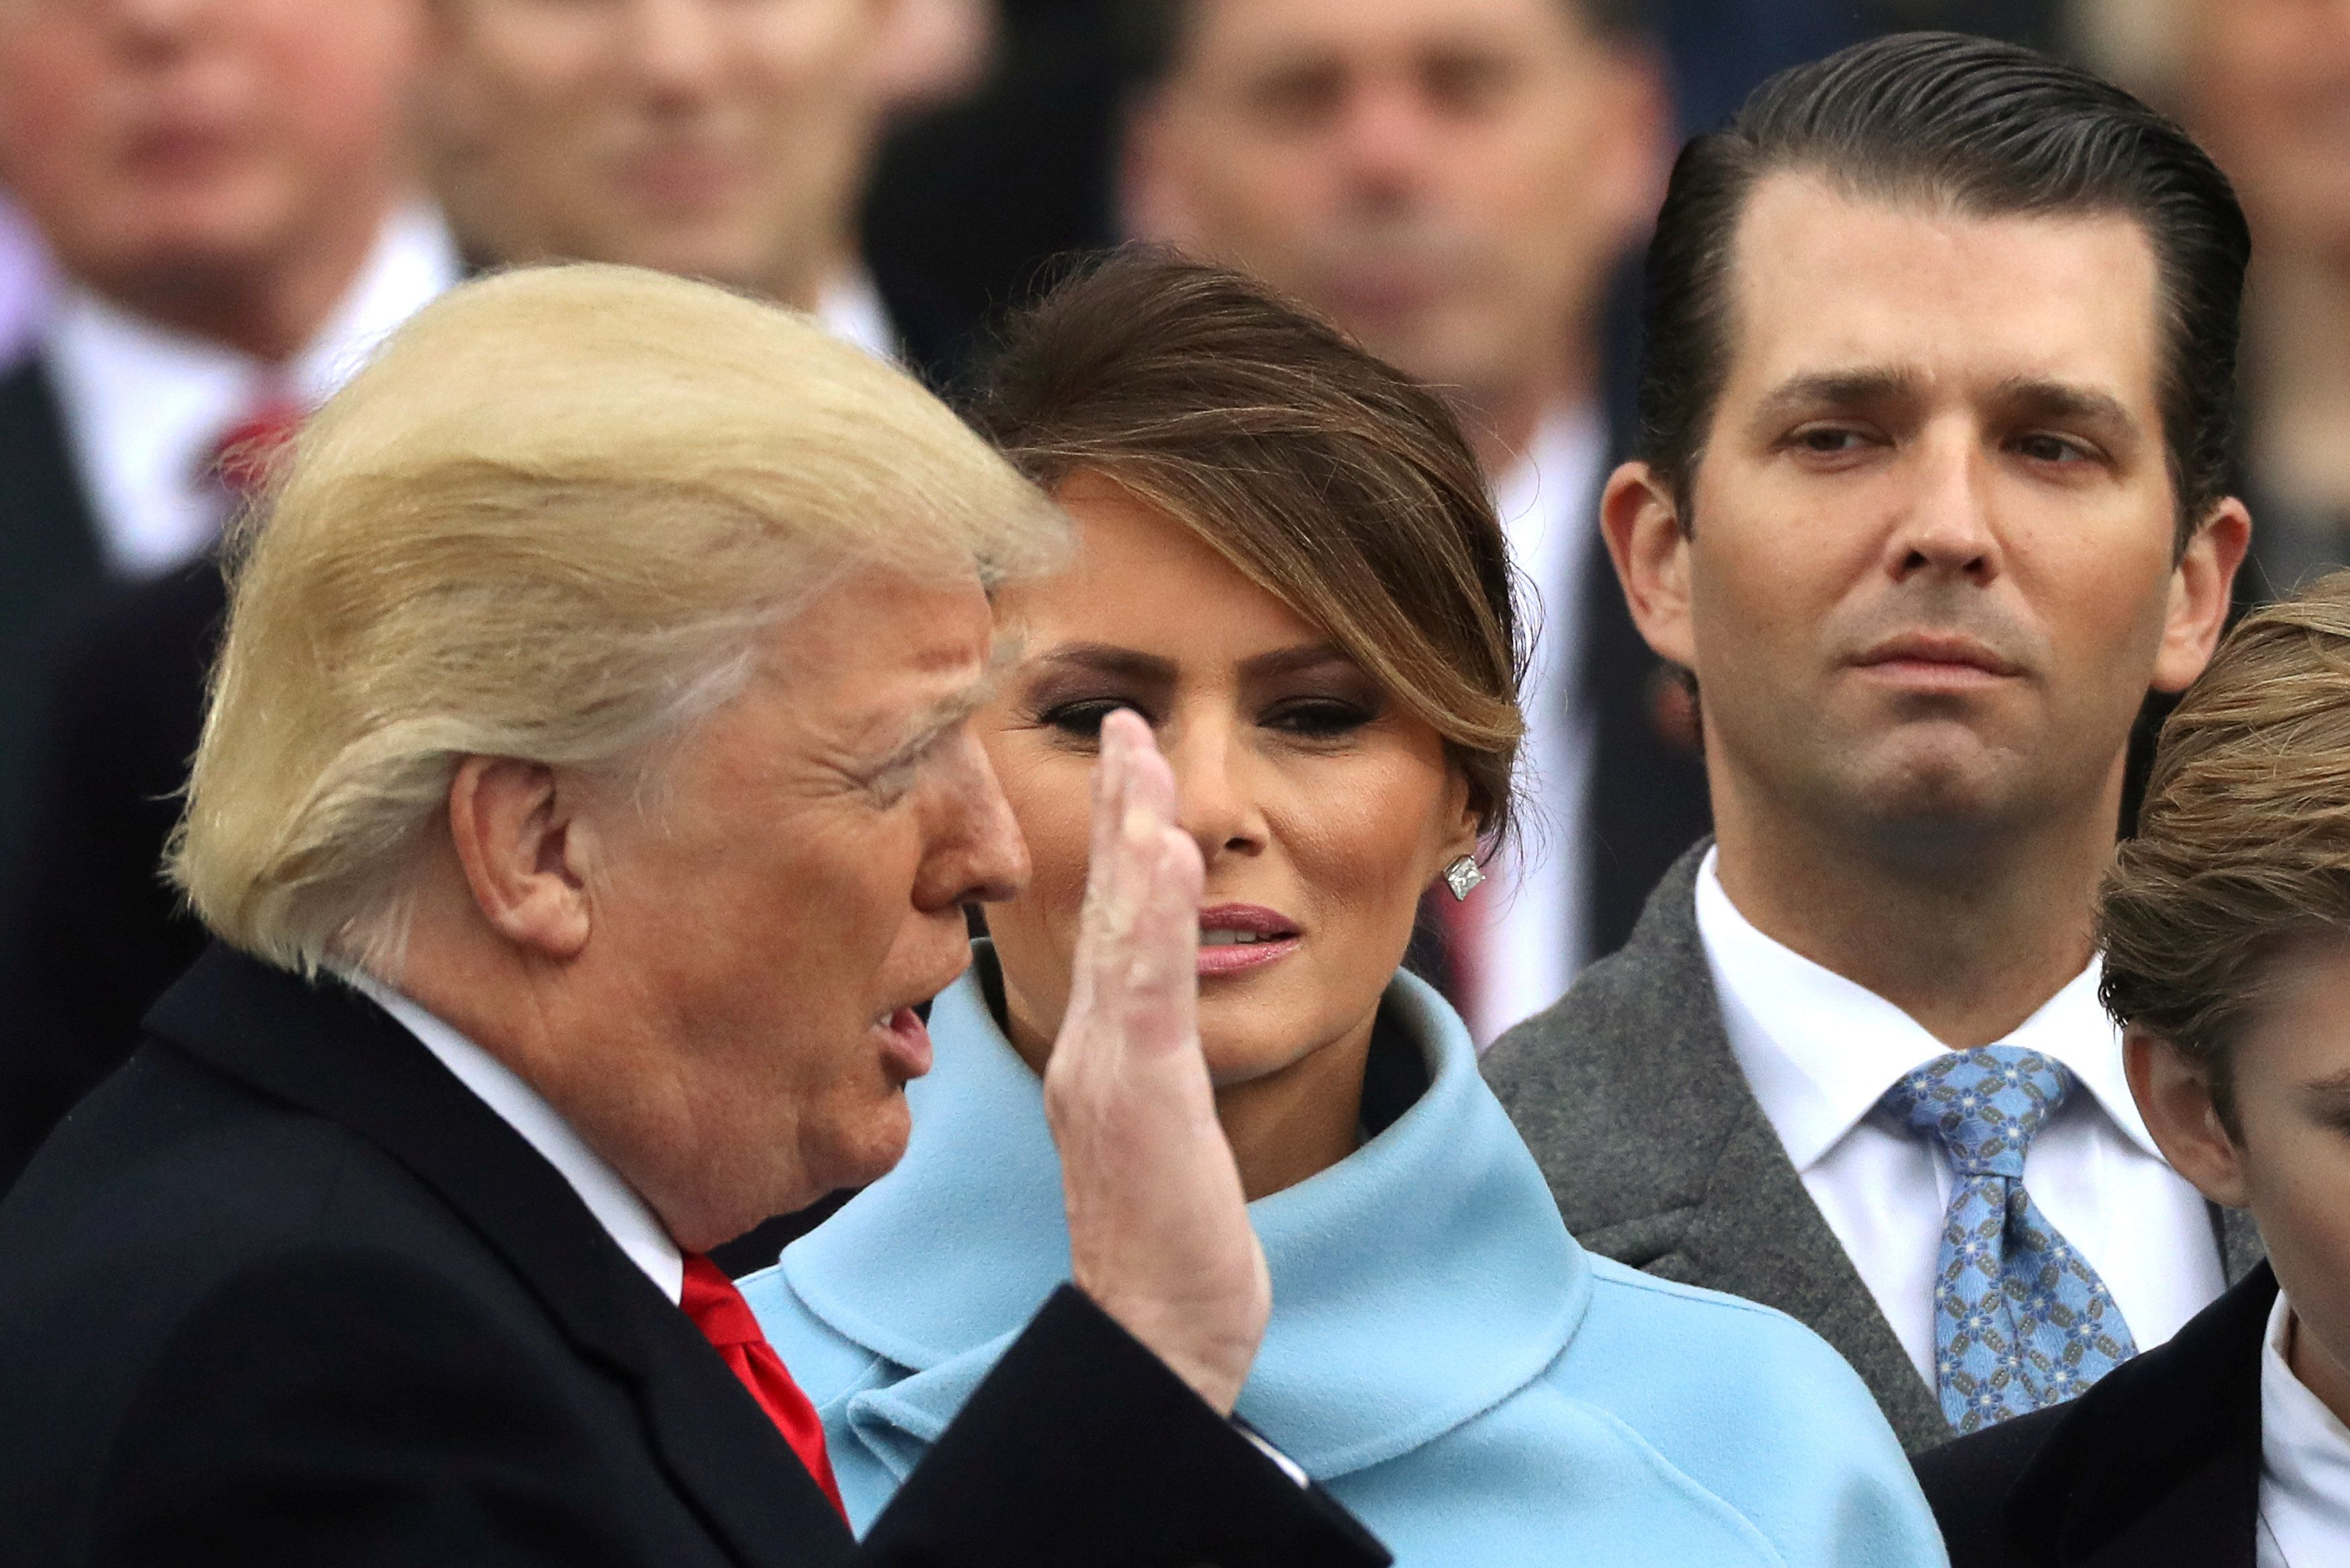 Donald Trump Jr. watches as his father, Donald Trump, is sworn in as the 45th president of the United States.